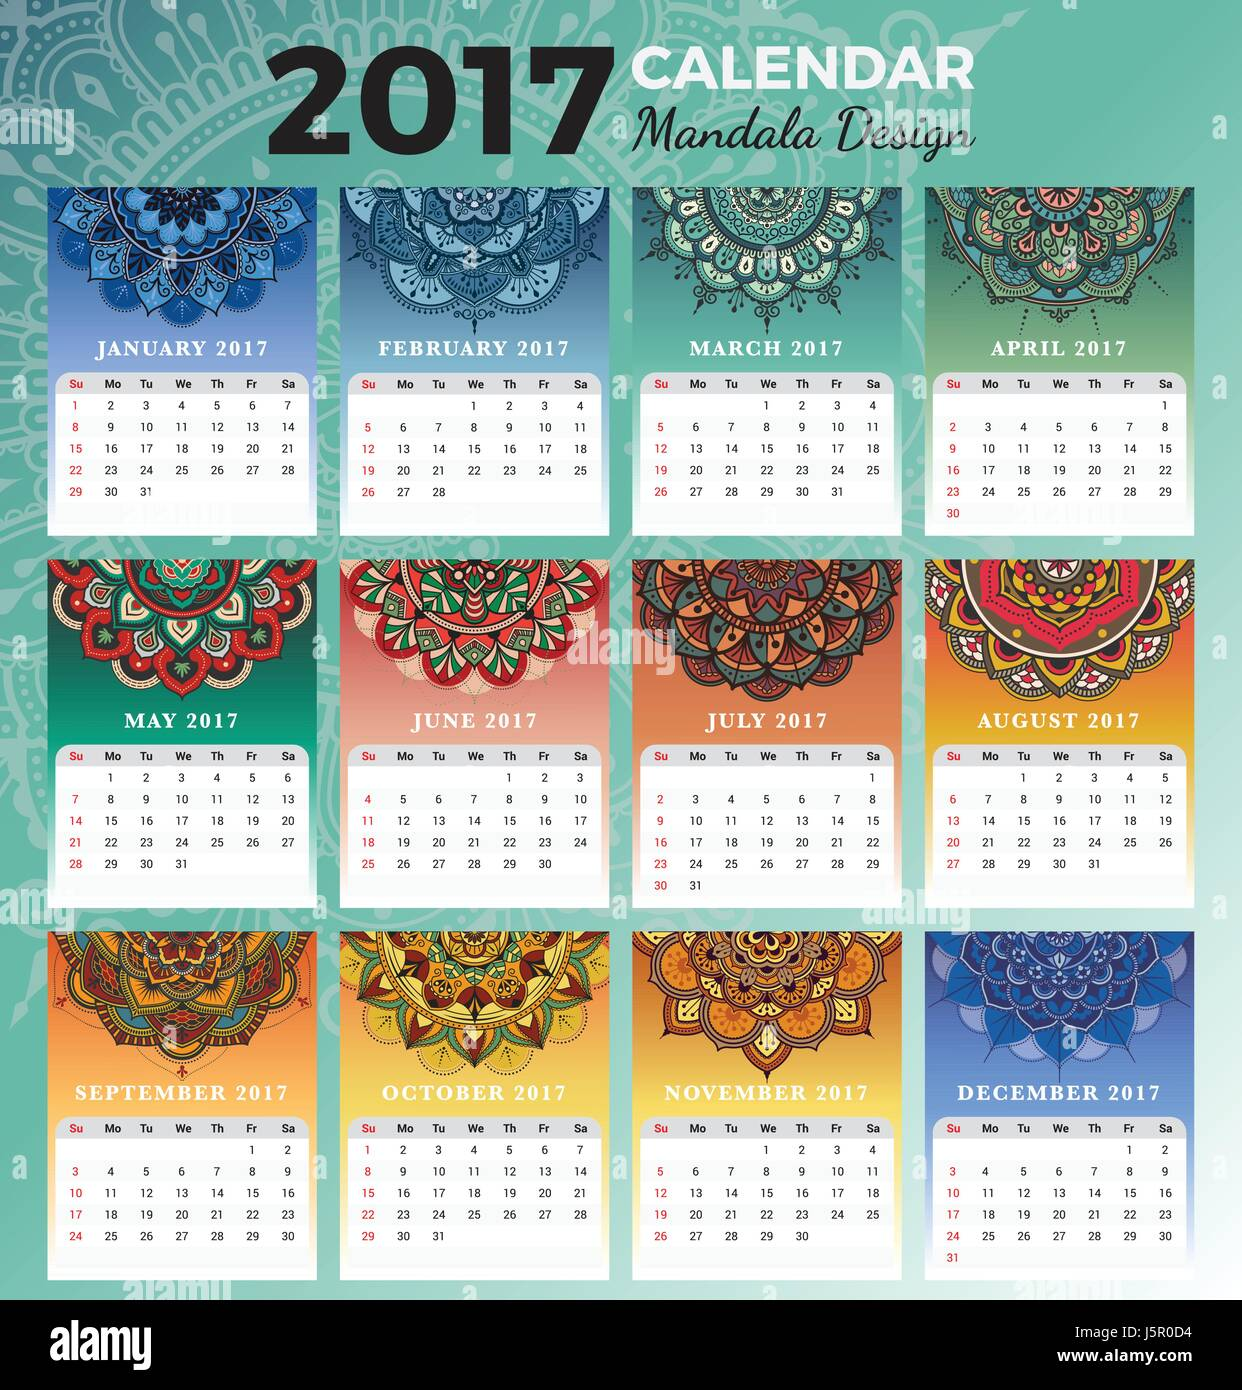 printable monthly calendar 2017 design with colors of seasons and